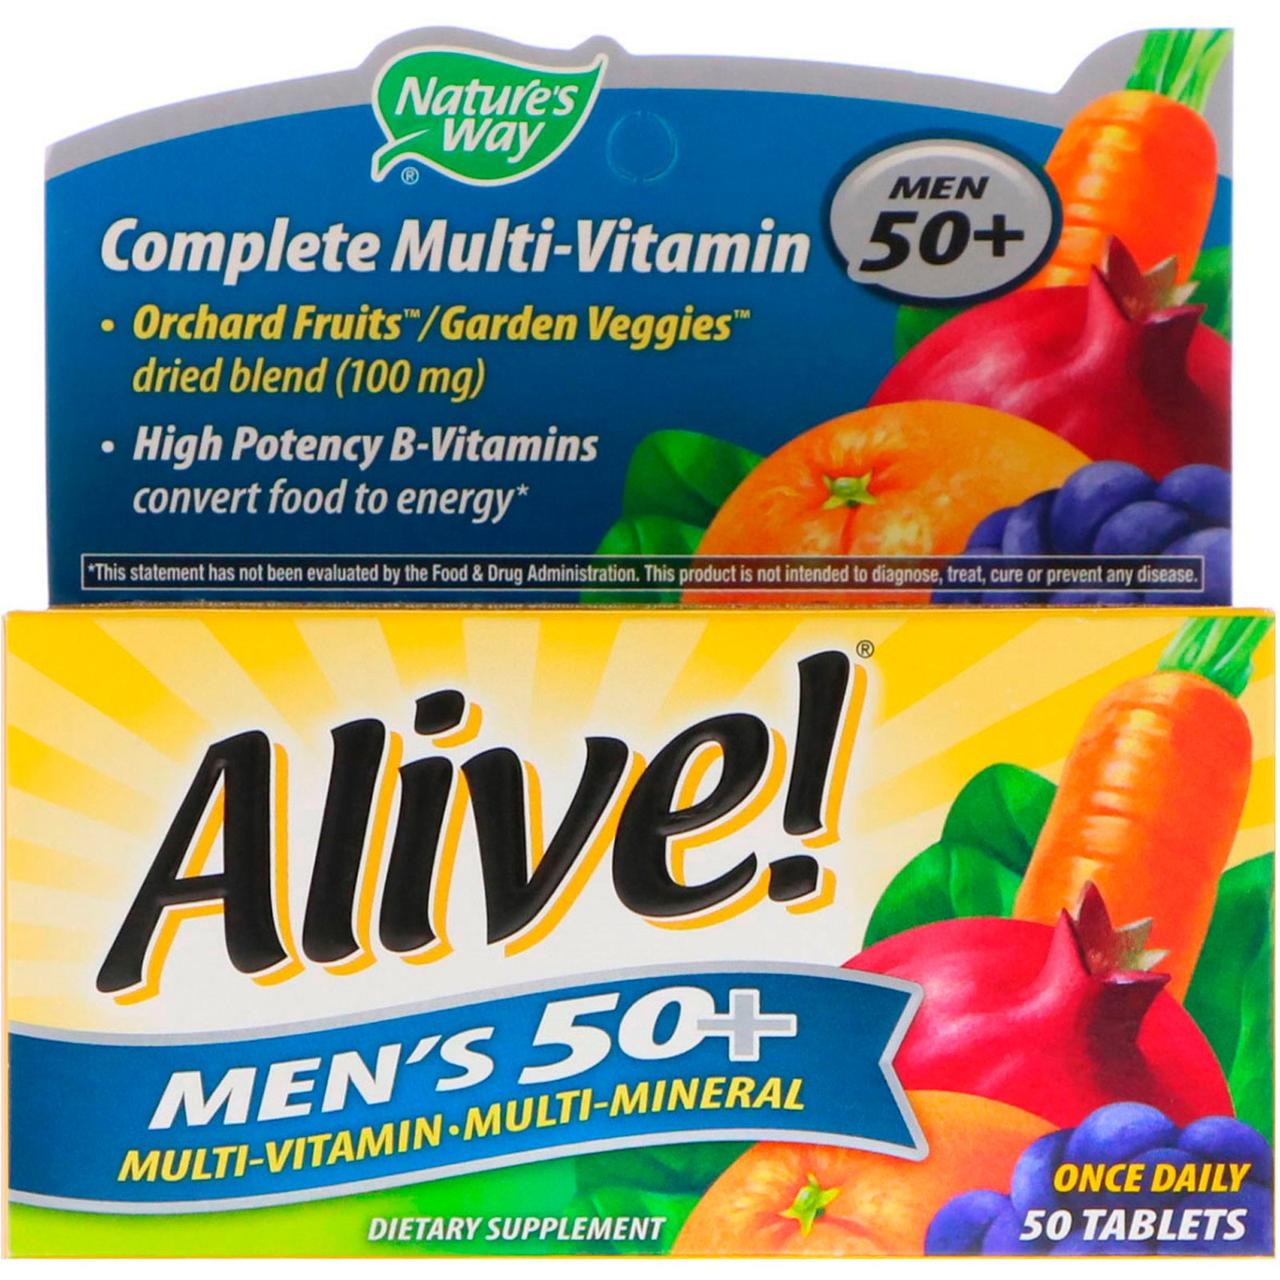 Nature's Way, Alive! Men's 50+ Complete Multi-Vitamin, 50 Tablets